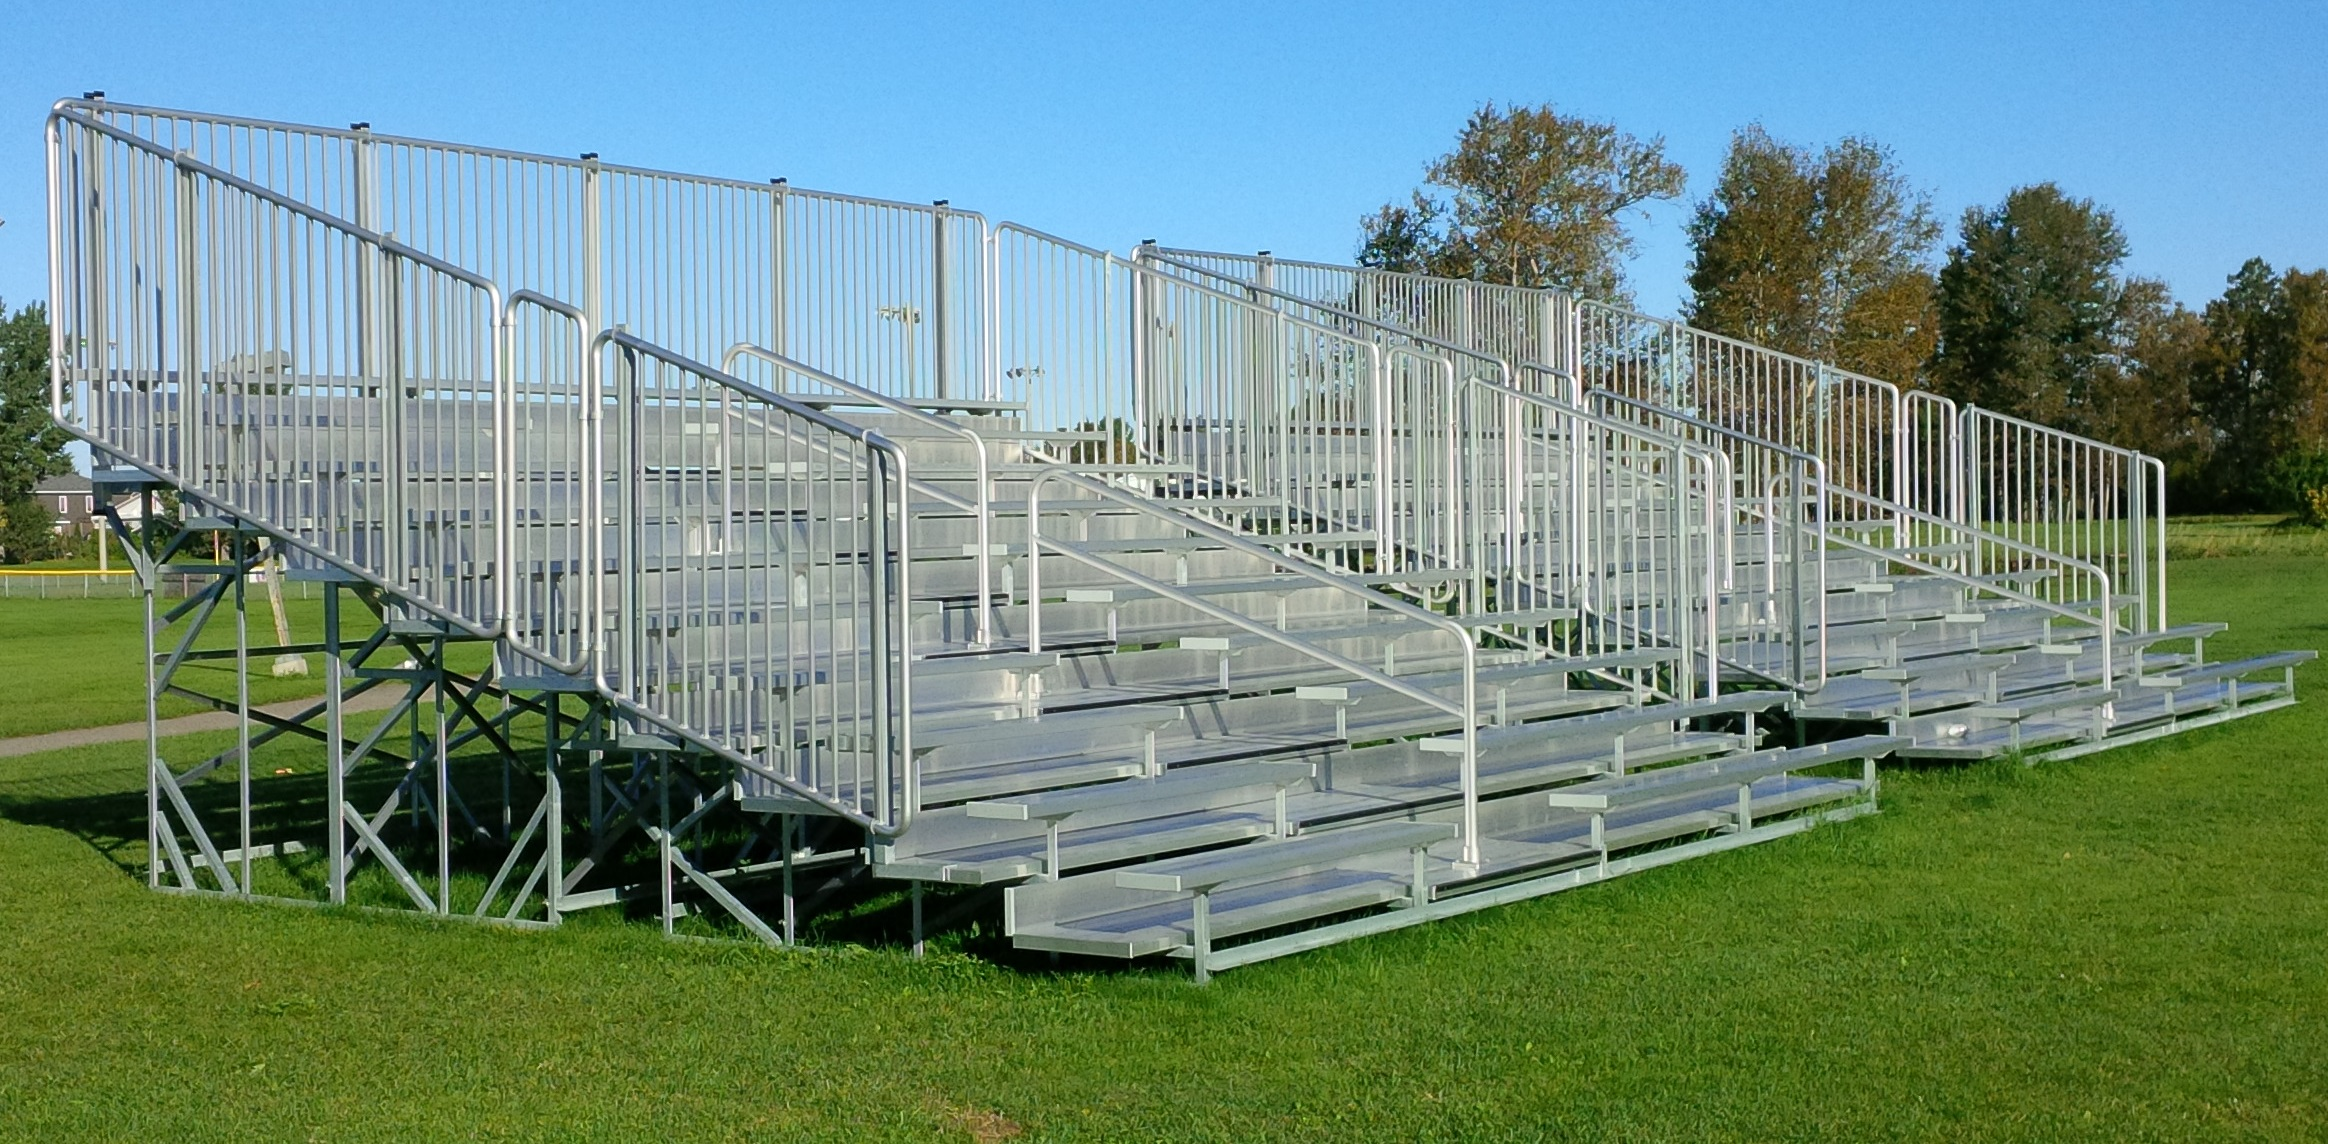 wheelchair volleyball swing chair replacement aluminum bleachers | fixed seating outdoor